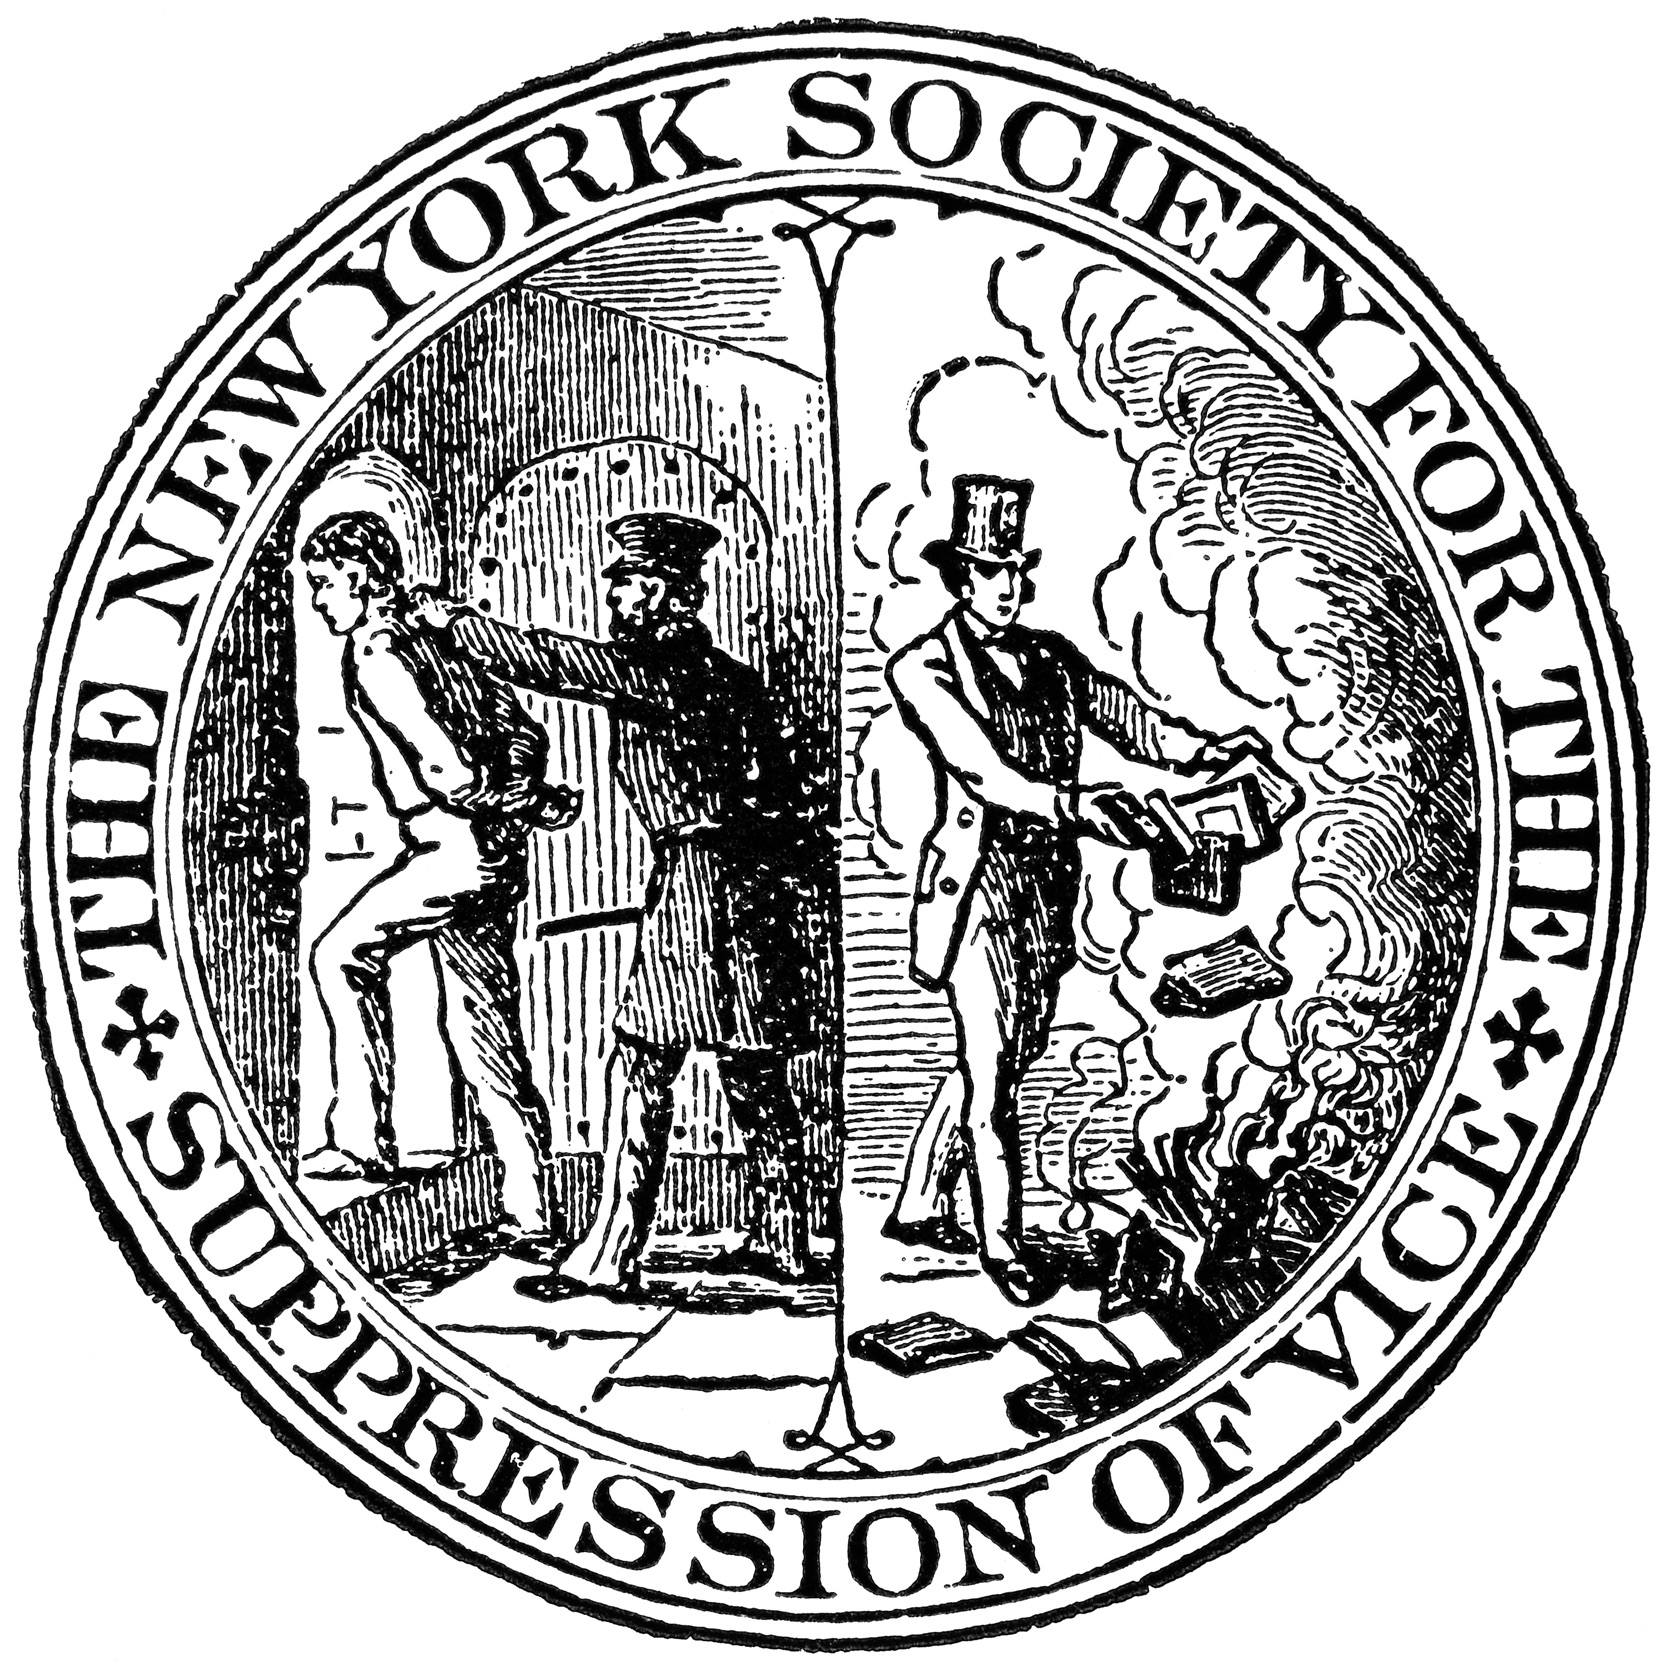 NewYorkSocietyForTheSuppressionOfVice.jpg